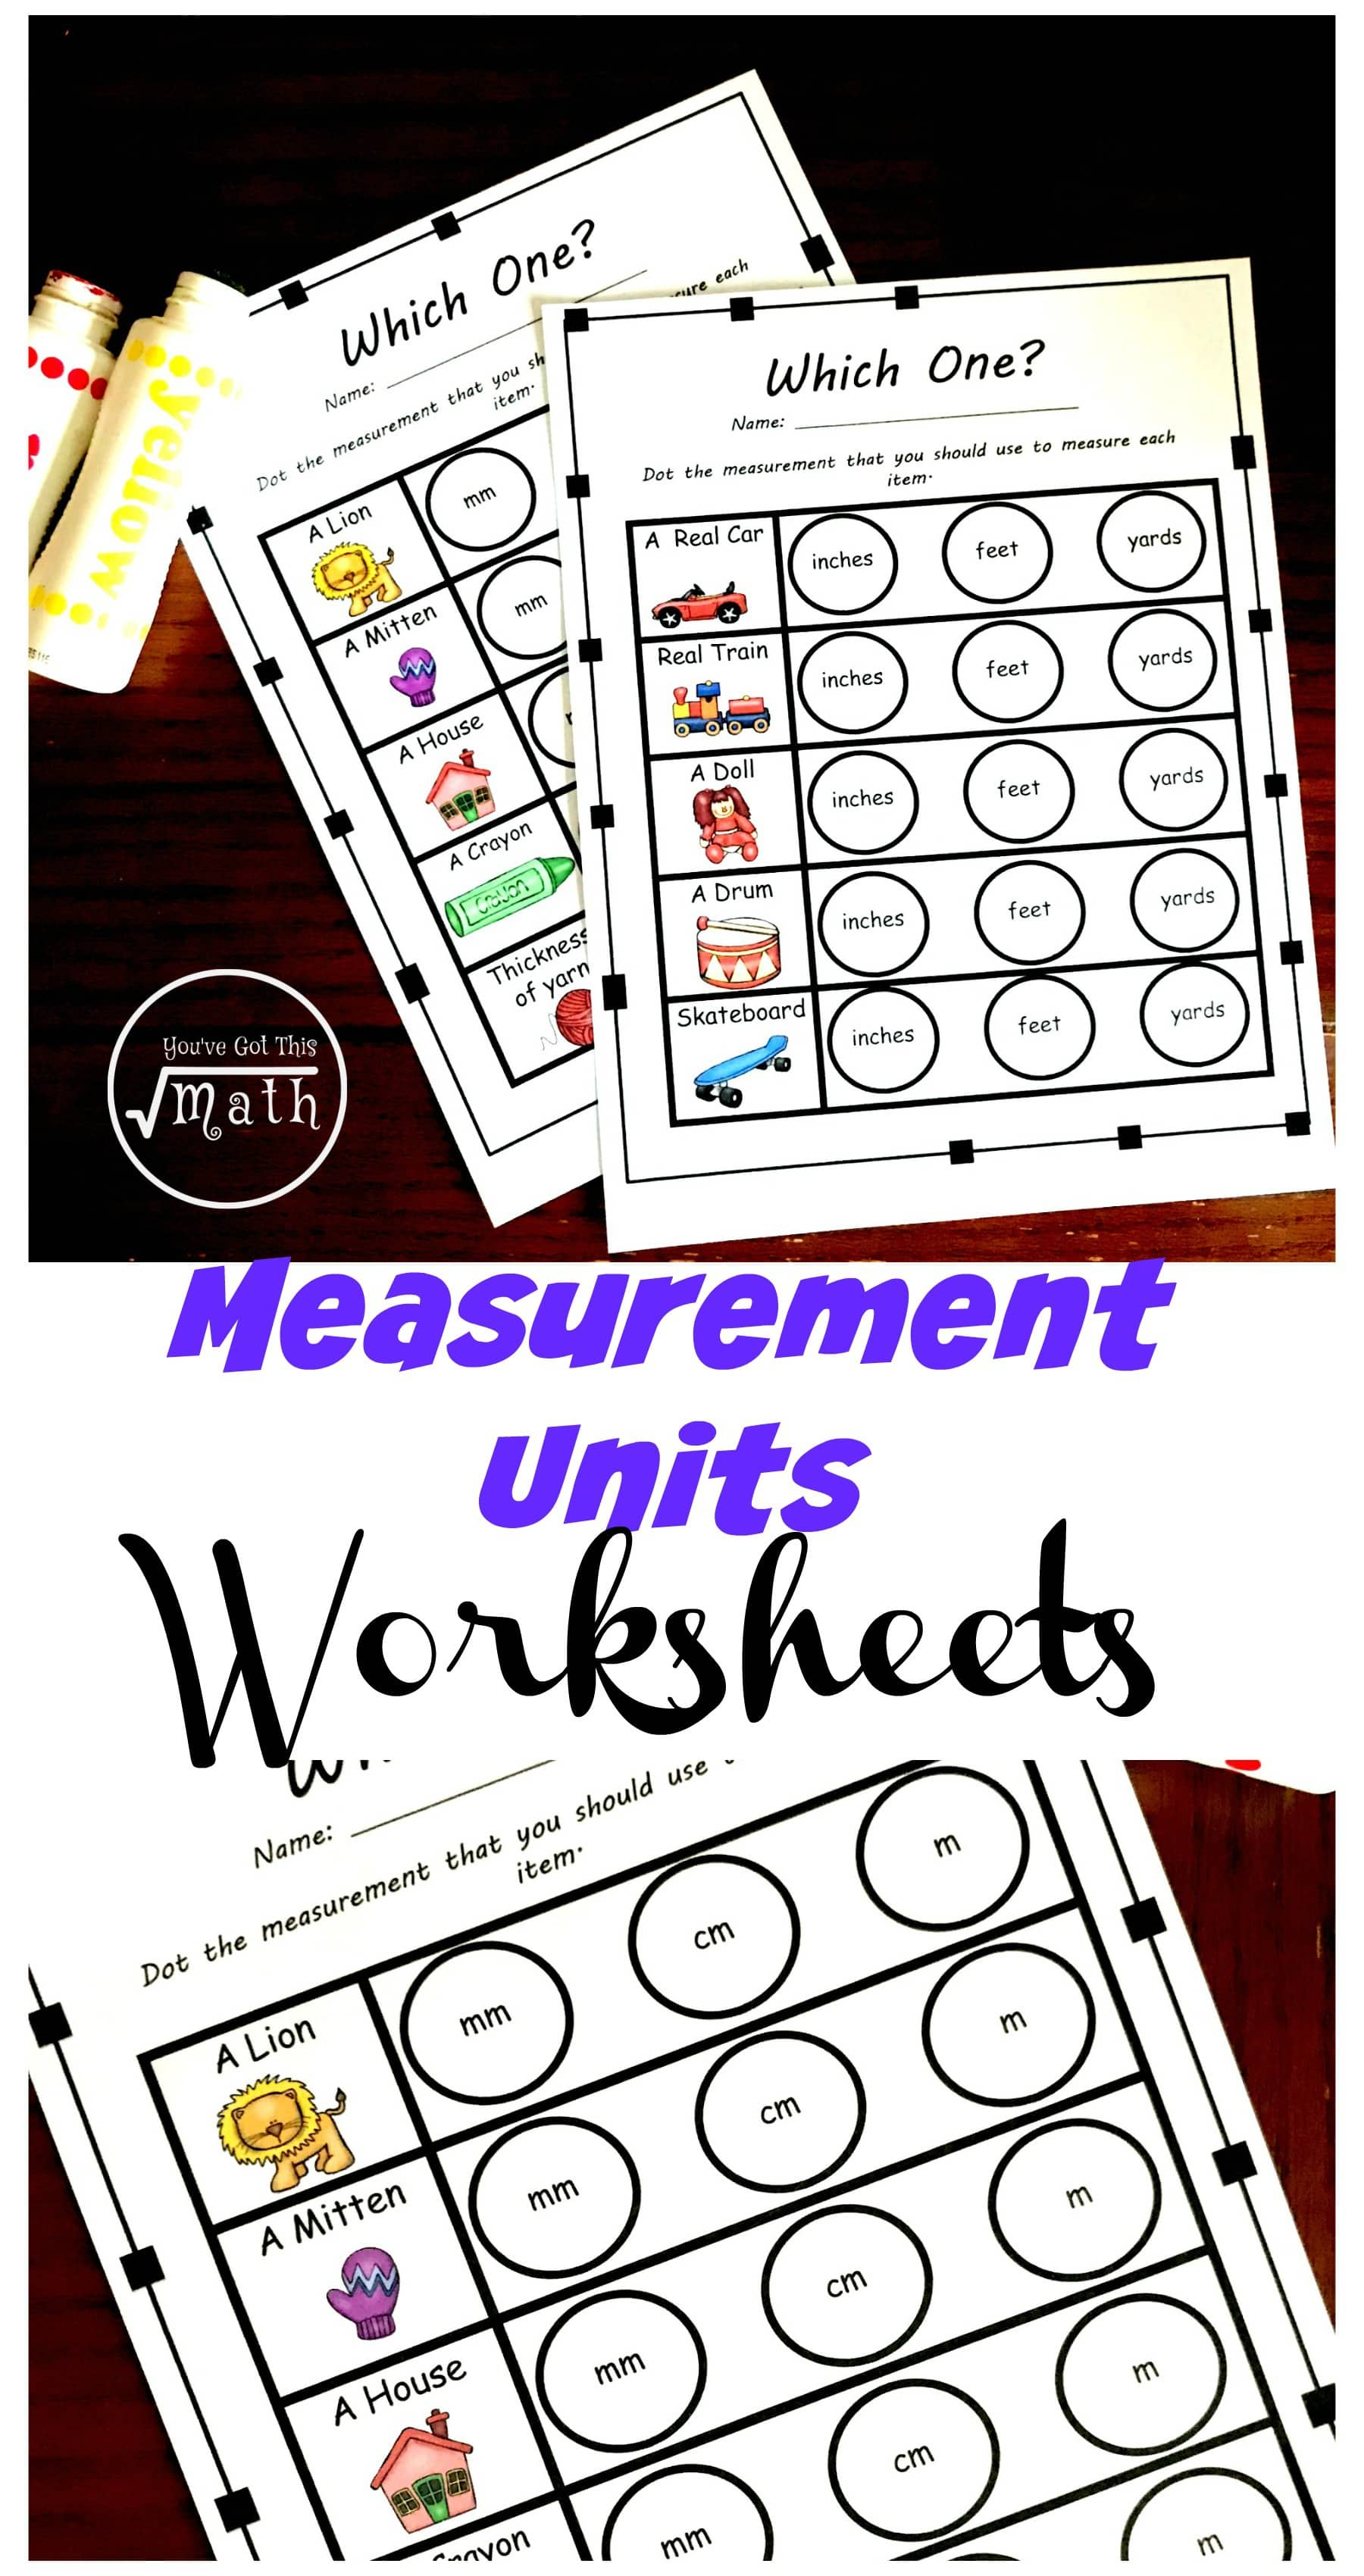 - Four Measurement Tools Worksheets To Practice Choosing Appropriate